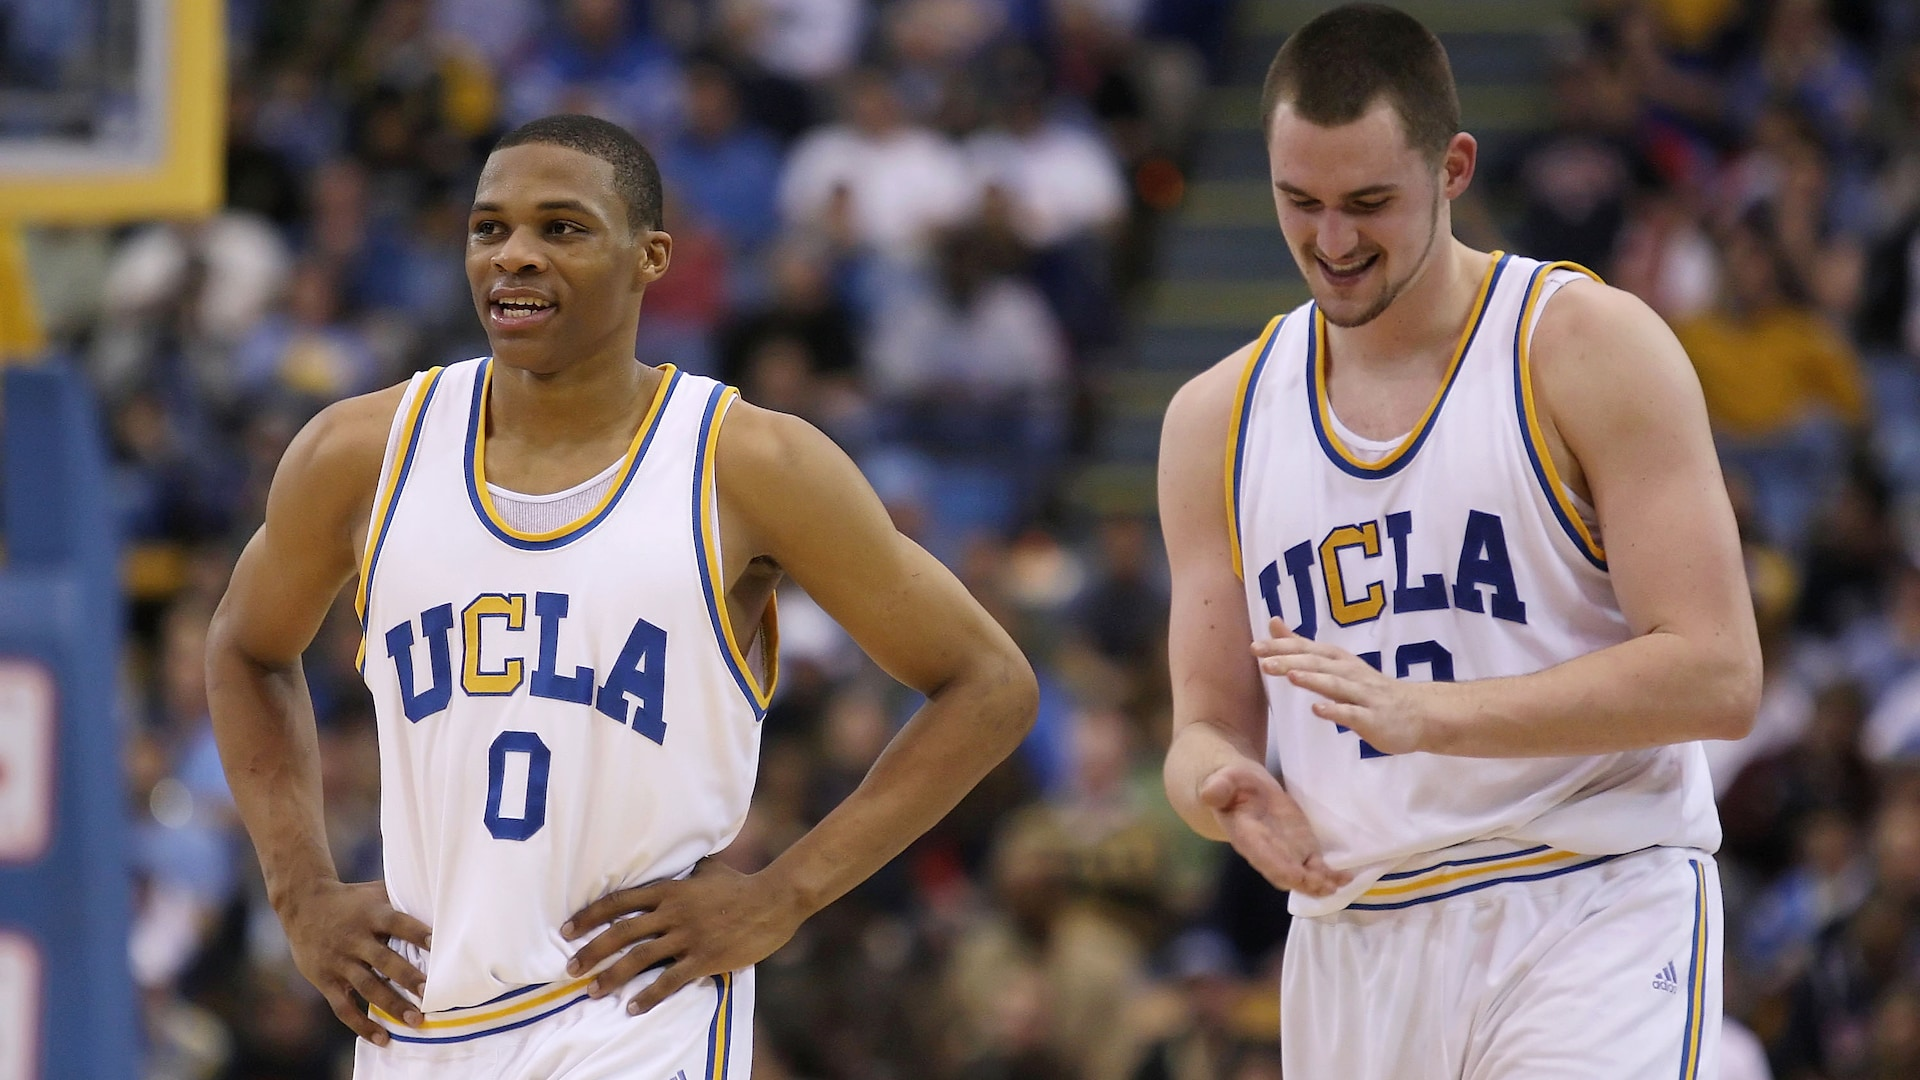 Kevin Love, Russell Westbrook headline UCLA's 2020 Hall of Fame class